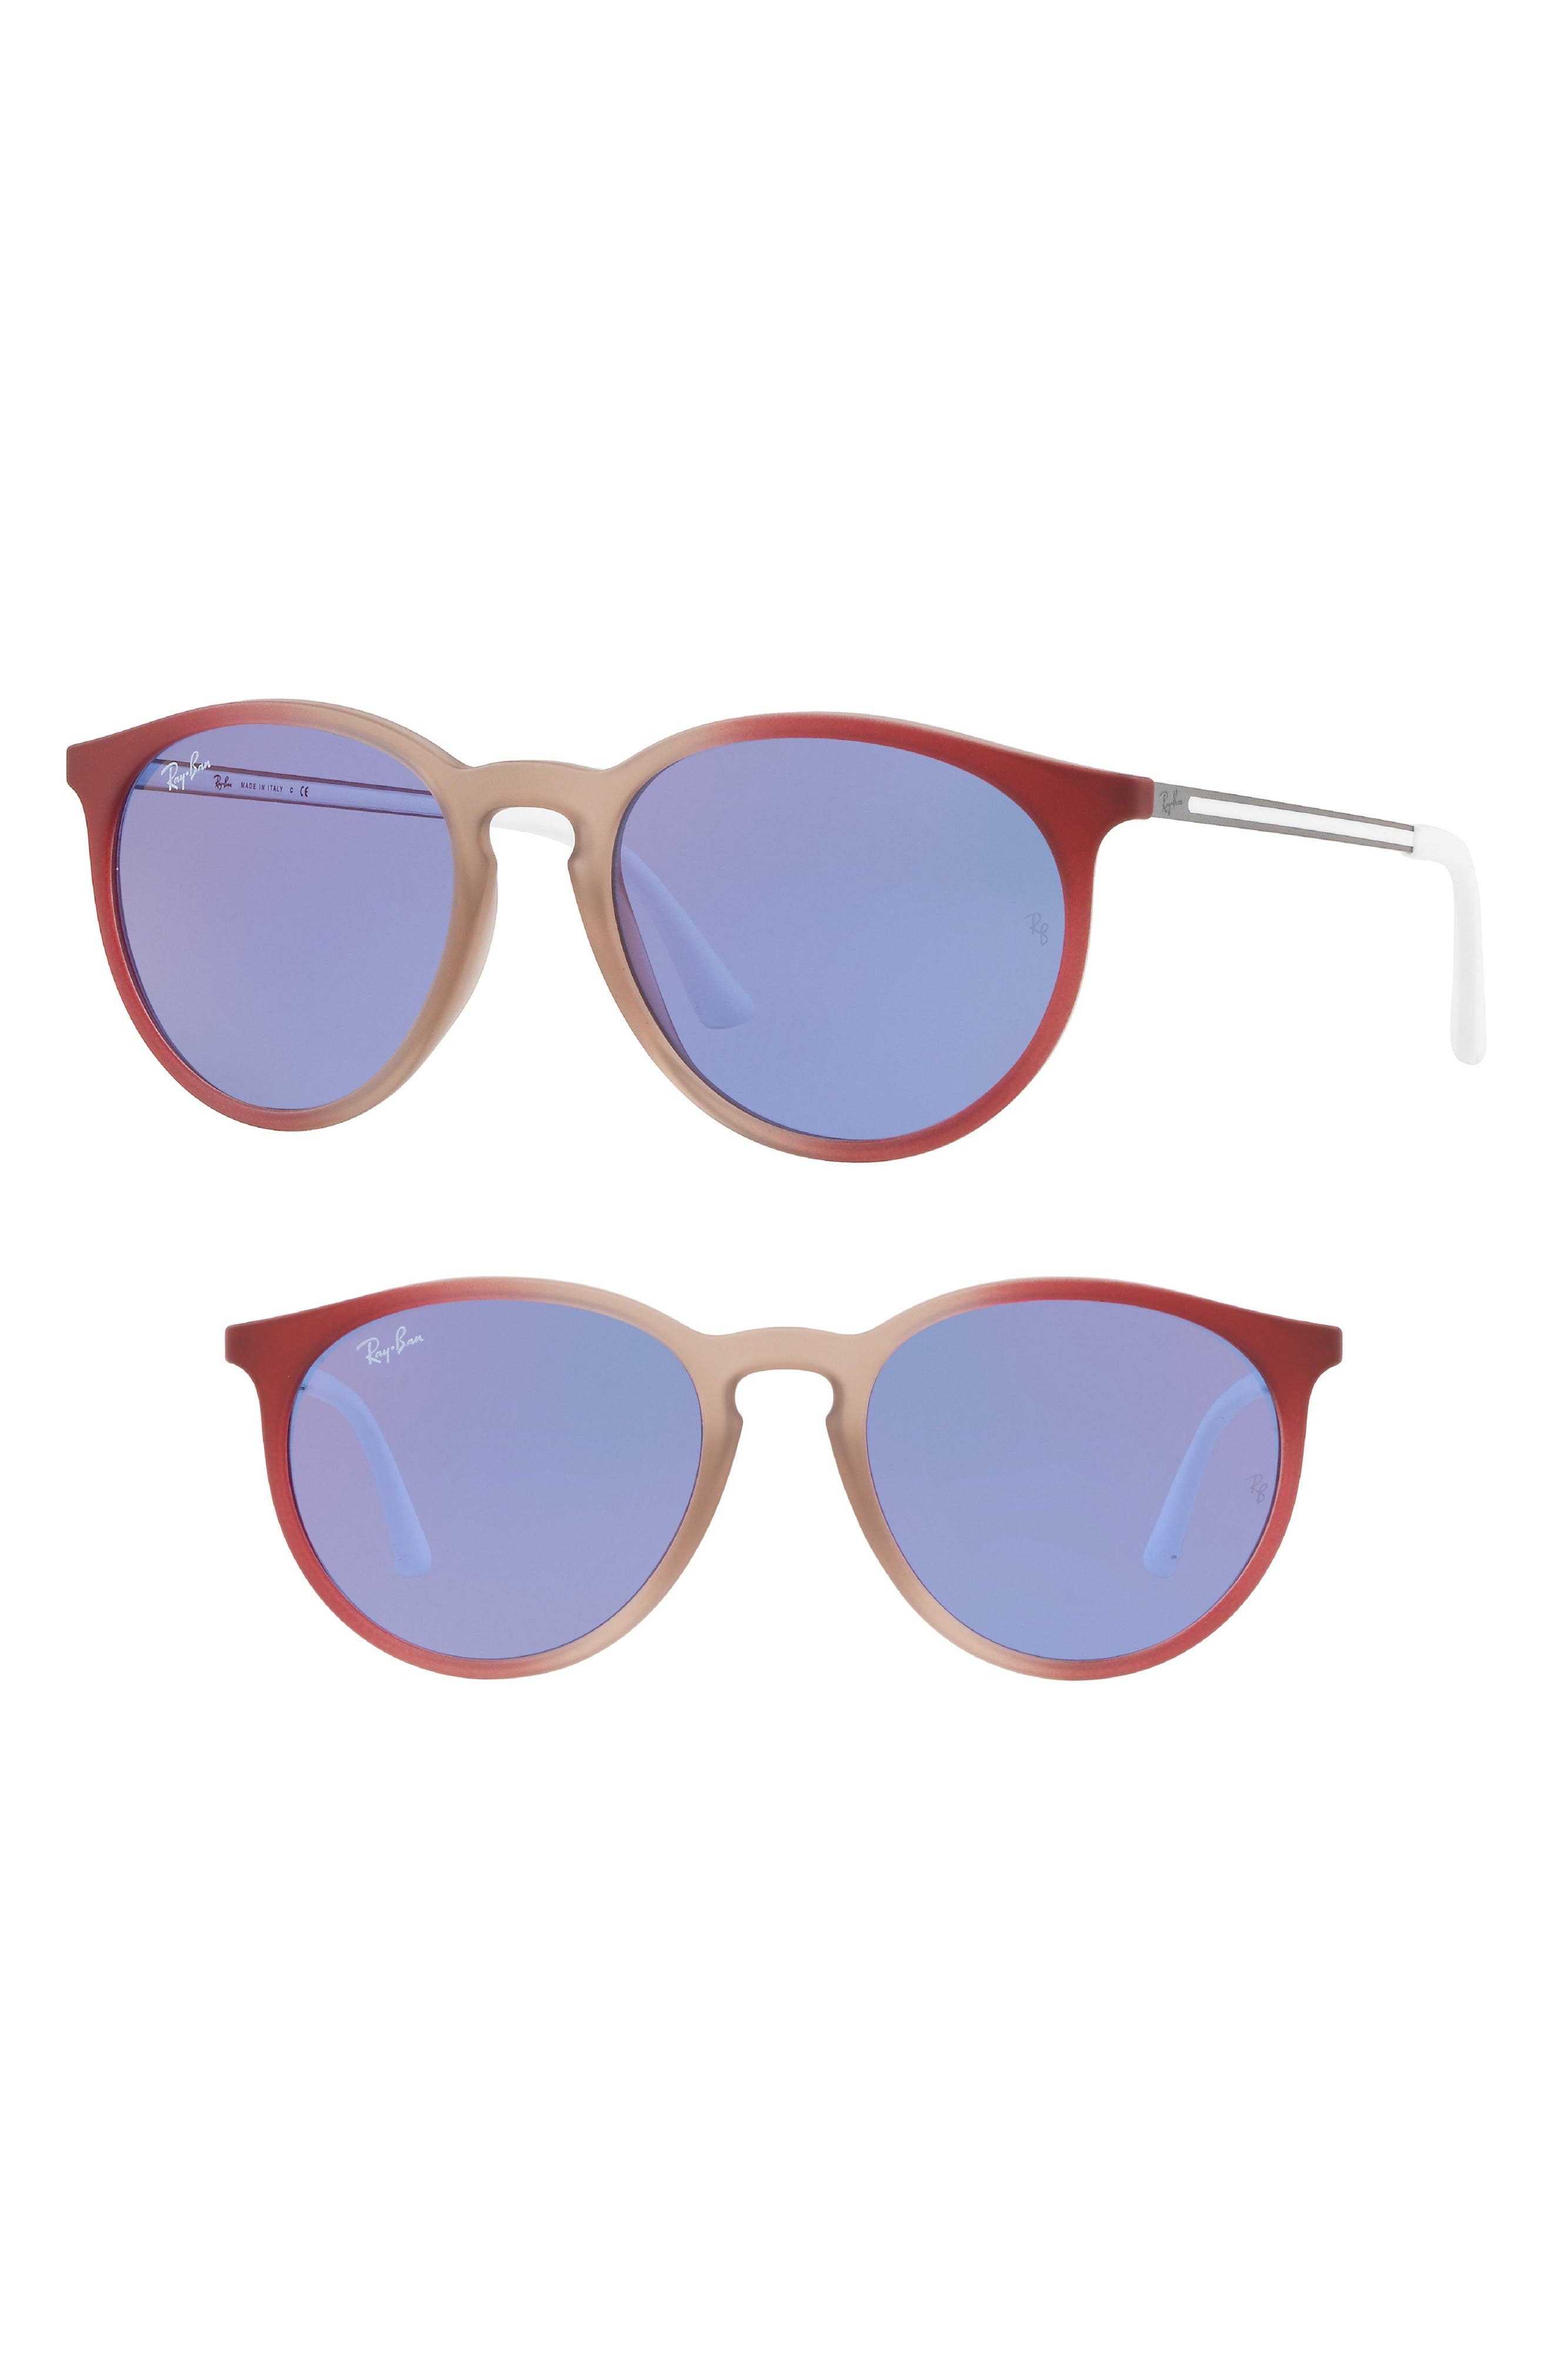 Youngster 53mm Round Sunglasses,                             Main thumbnail 1, color,                             Purple/ Red Mirror